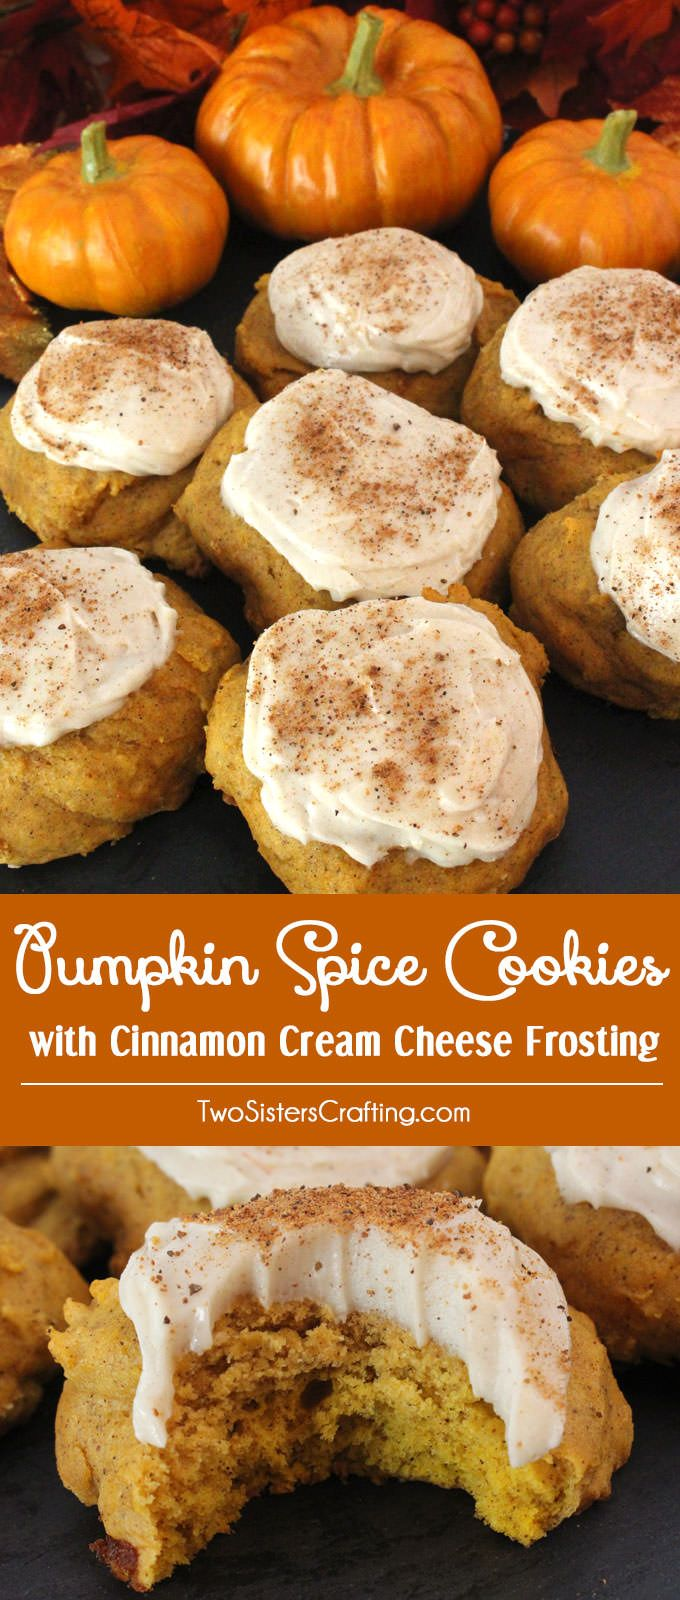 This Pumpkin Spice Cookies with Cinnamon Cream Cheese Frosting is an old family recipe that only gets better with age they taste just like pumpkin pie.